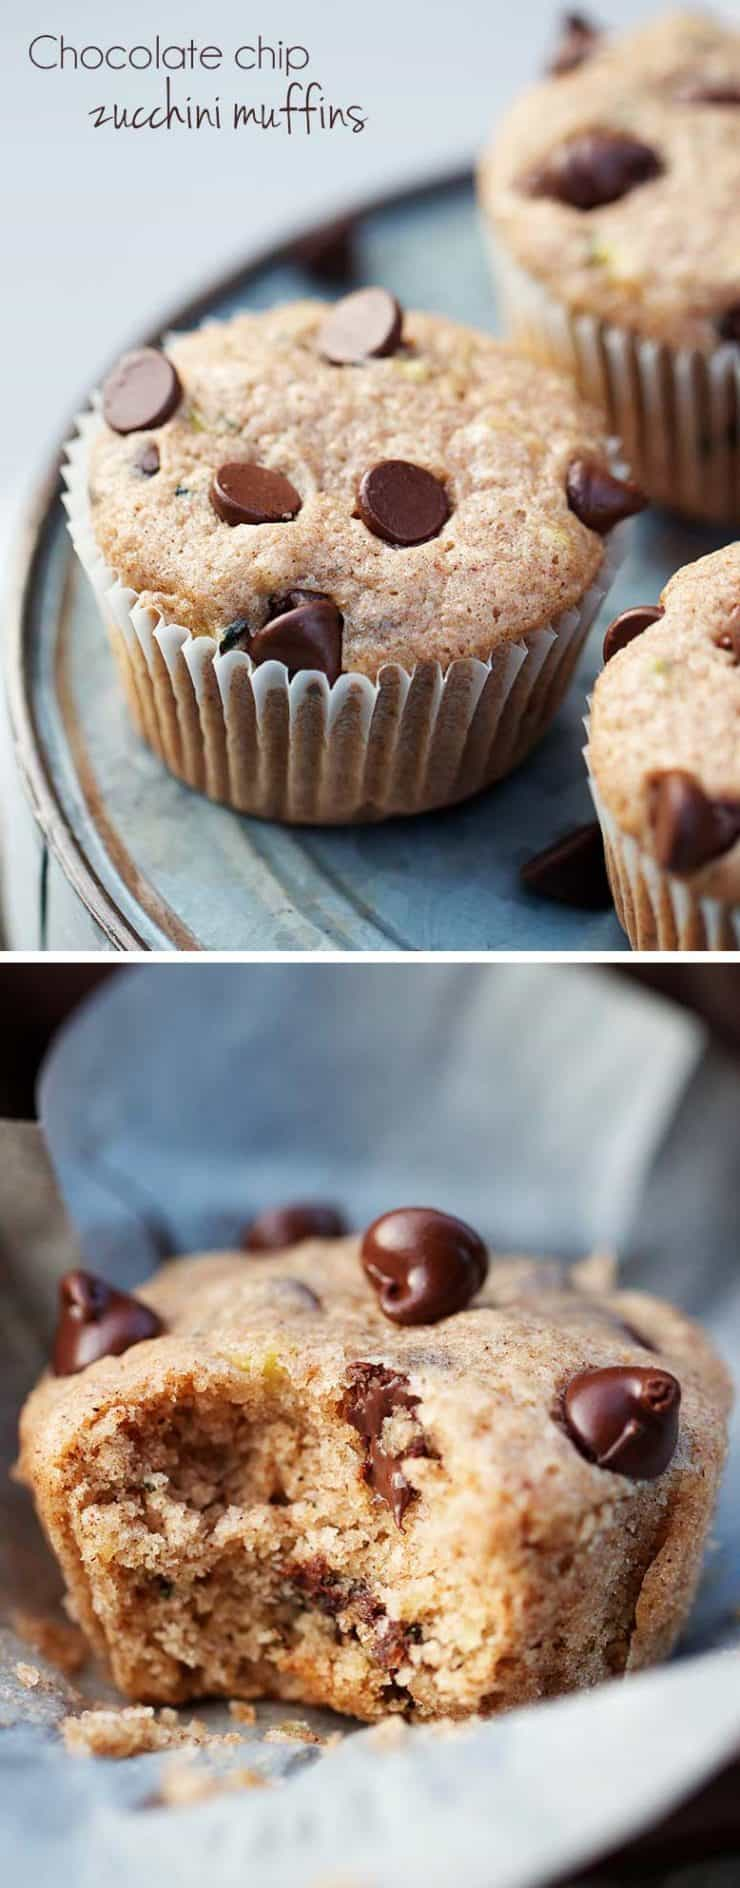 Chocolate chip zucchini muffins -super soft and jam packed with flavor! One of my family's favorite recipes!